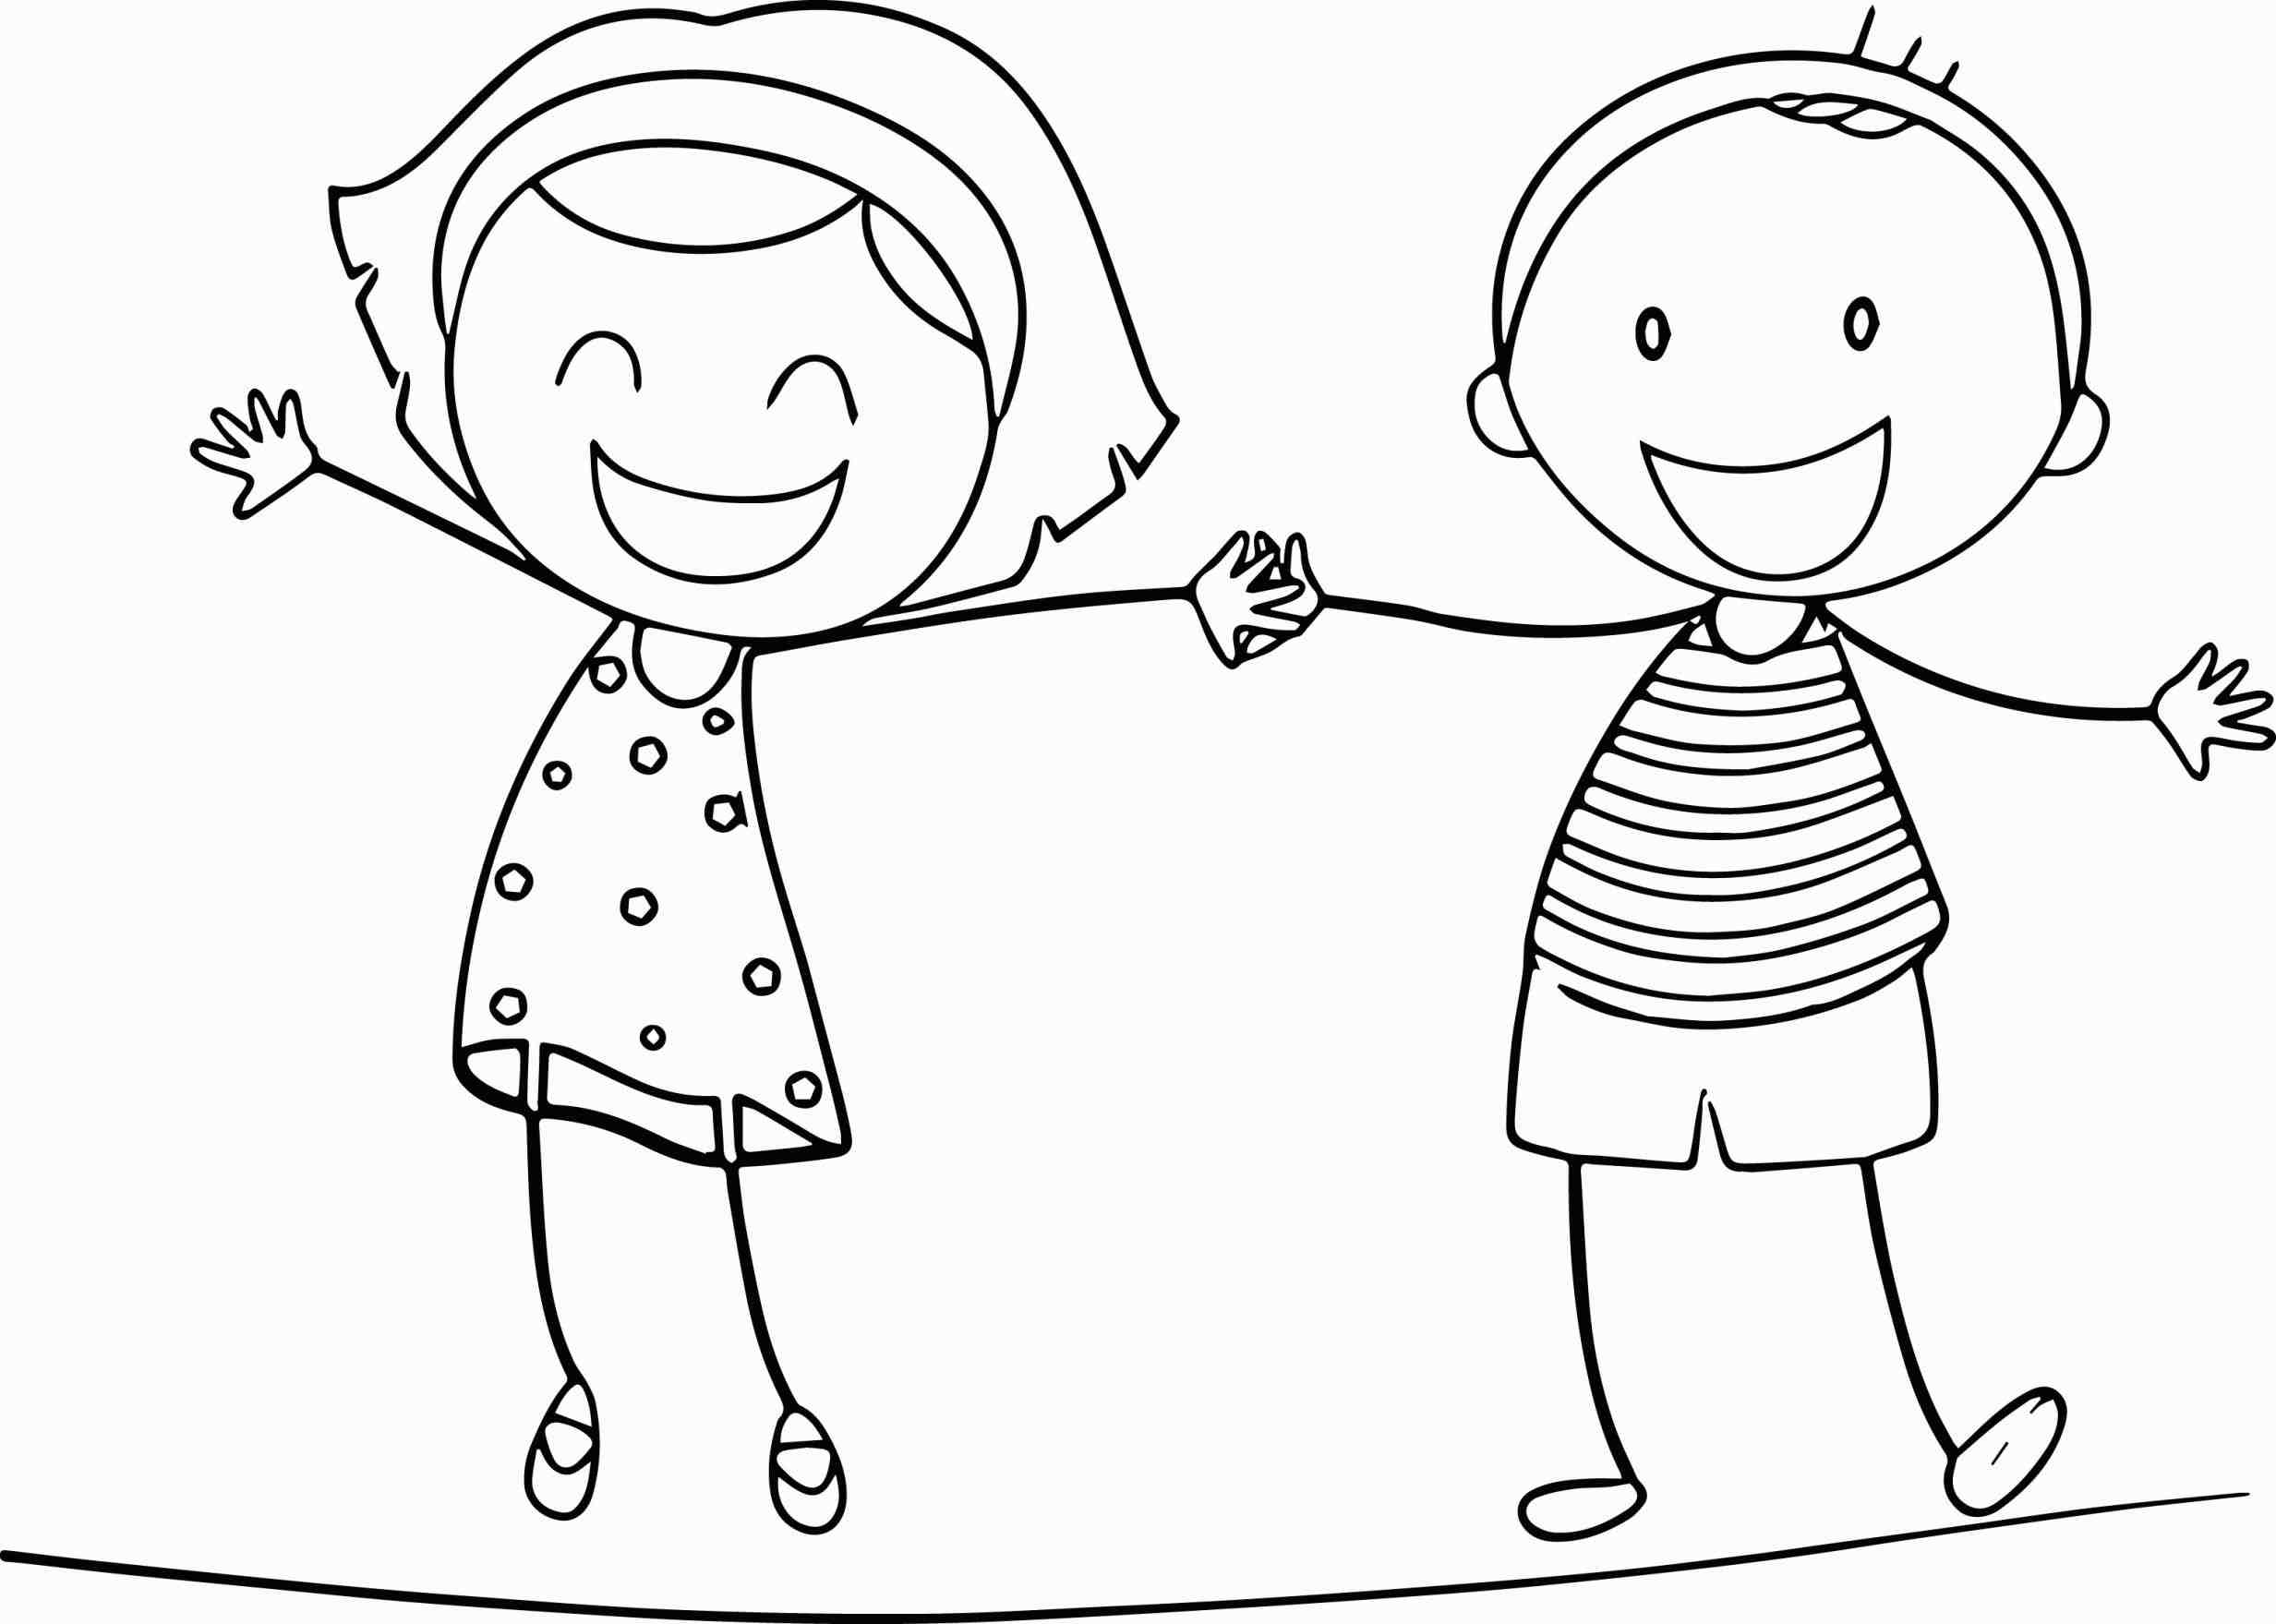 Boy And Girl Holding Hands Coloring Pages At Getcolorings